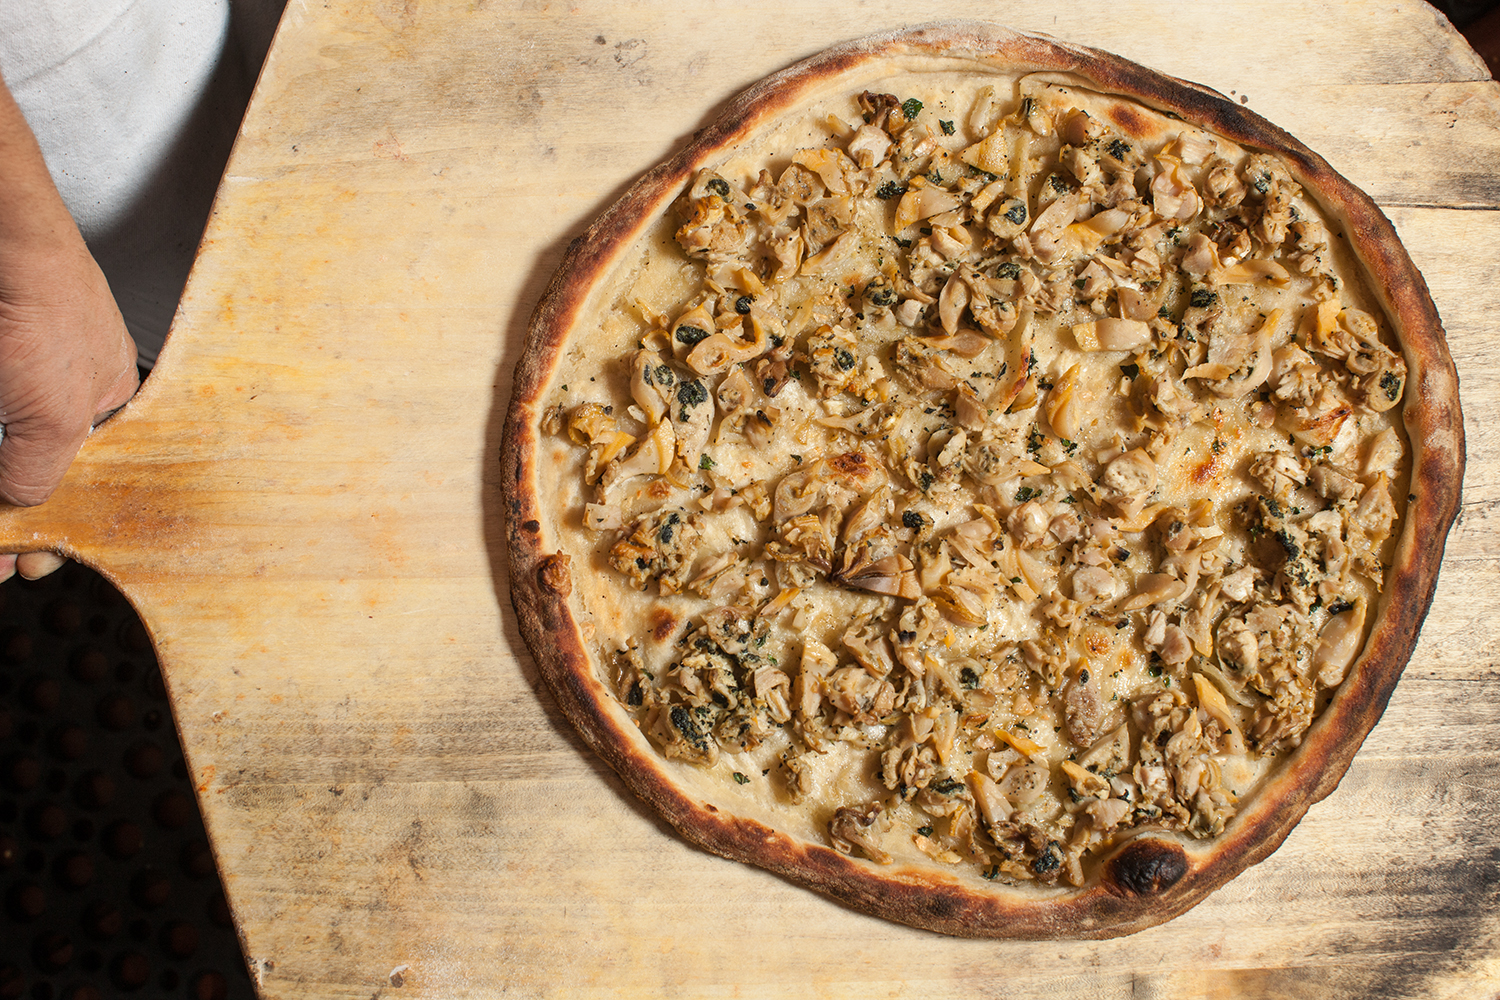 A finished clam pie.